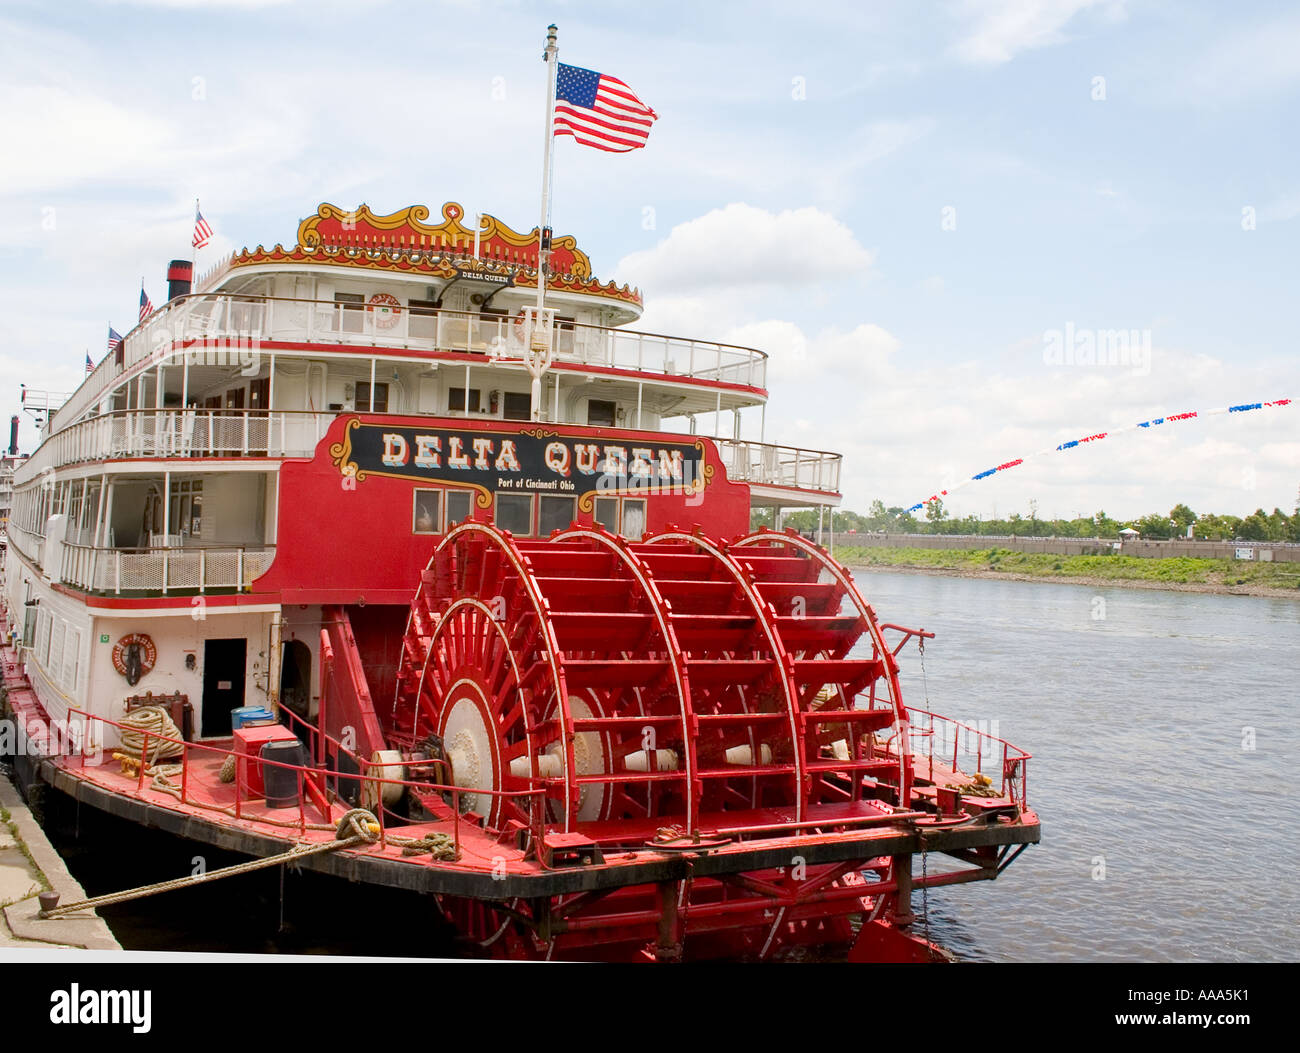 Paddlewheel Of The Historic Delta Queen Steam Powered Cruise Boat St Paul Minnesota USA